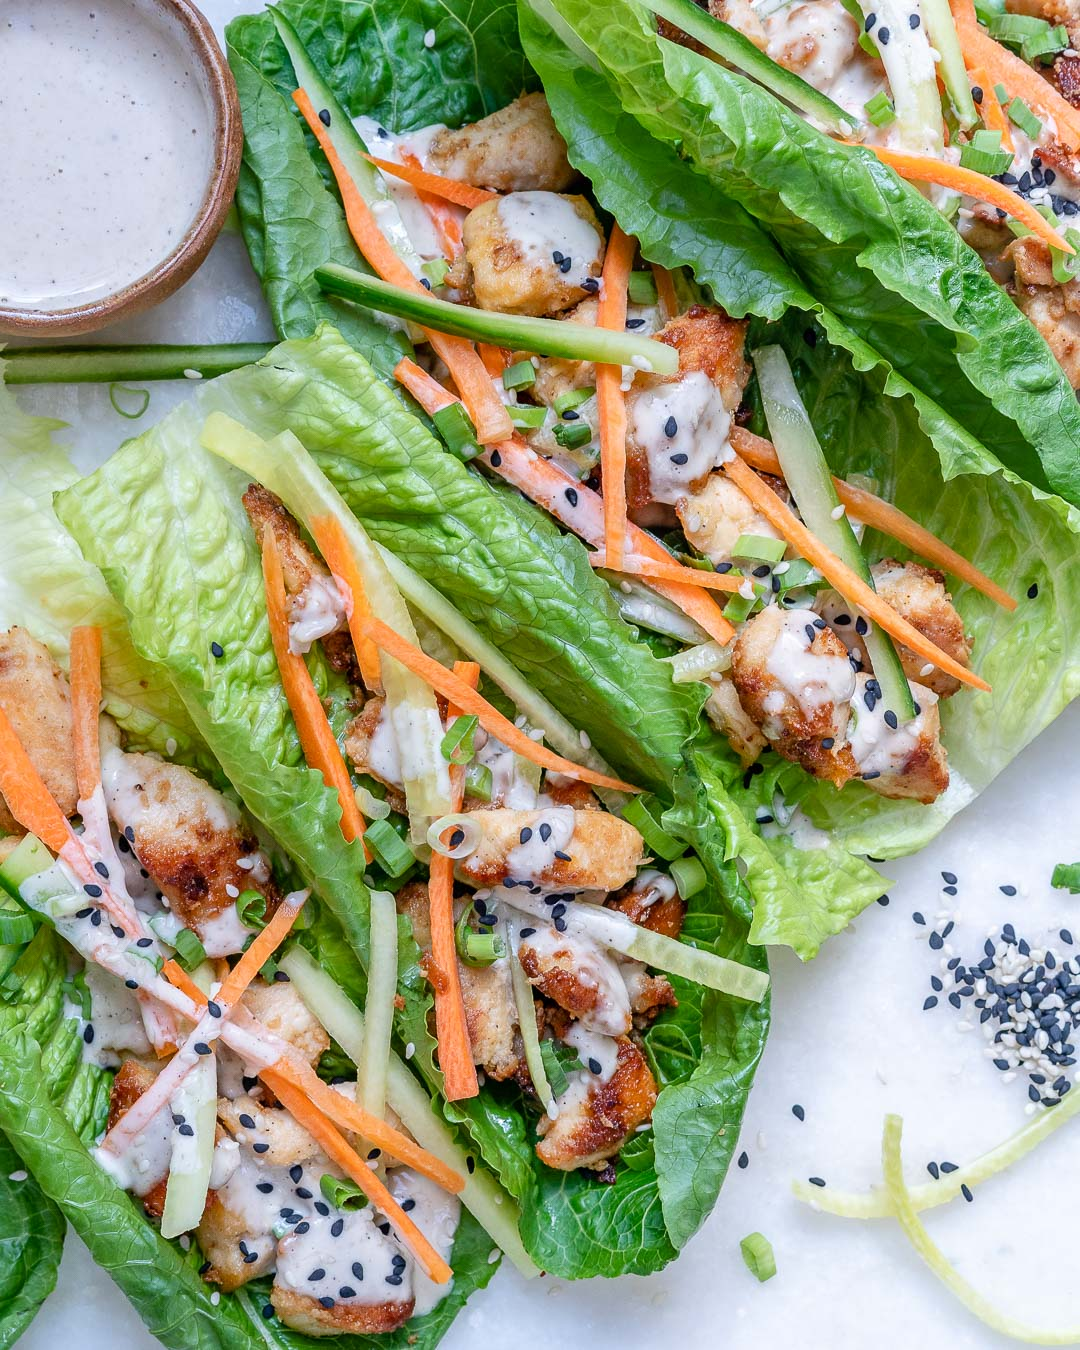 Healthy Chicken Lettuce Wraps With Tahini Sauce (Paleo/Whole30) 1